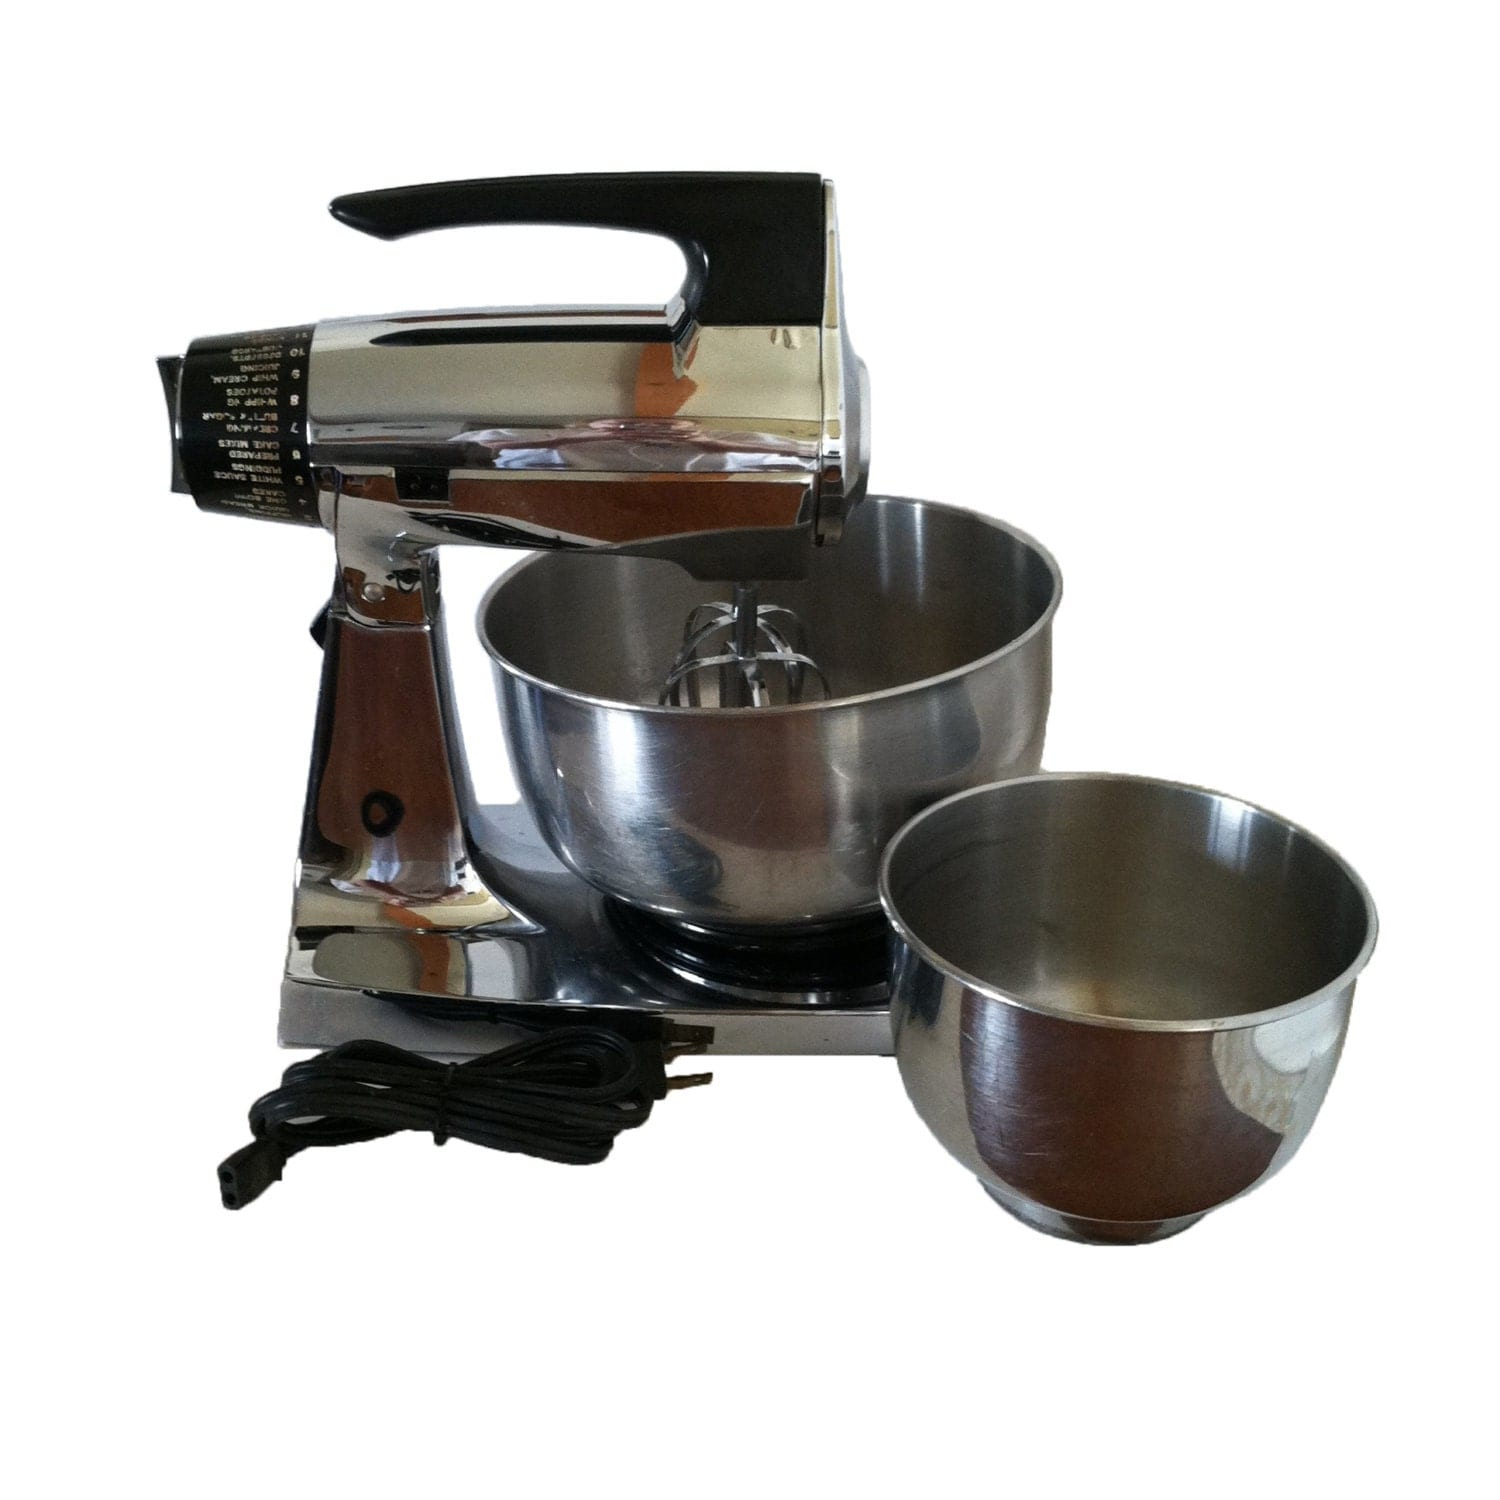 Just Like Home Toy Stand Mixer : Vintage chrome sunbeam mixmaster speed mixer and stand with